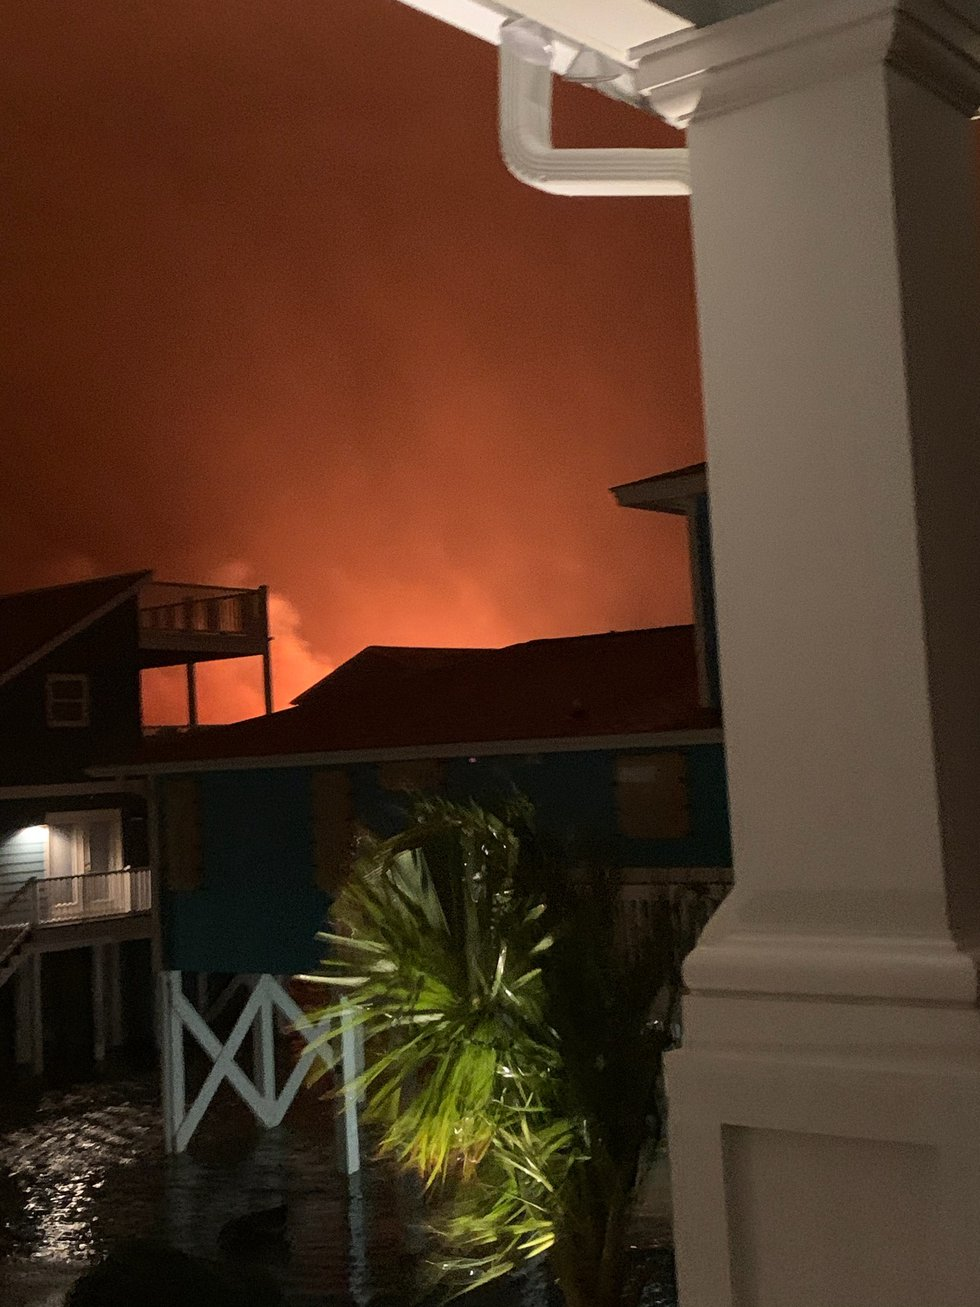 Fires sparked in Ocean Isle Beach as Hurricane Isaias moved on shore.